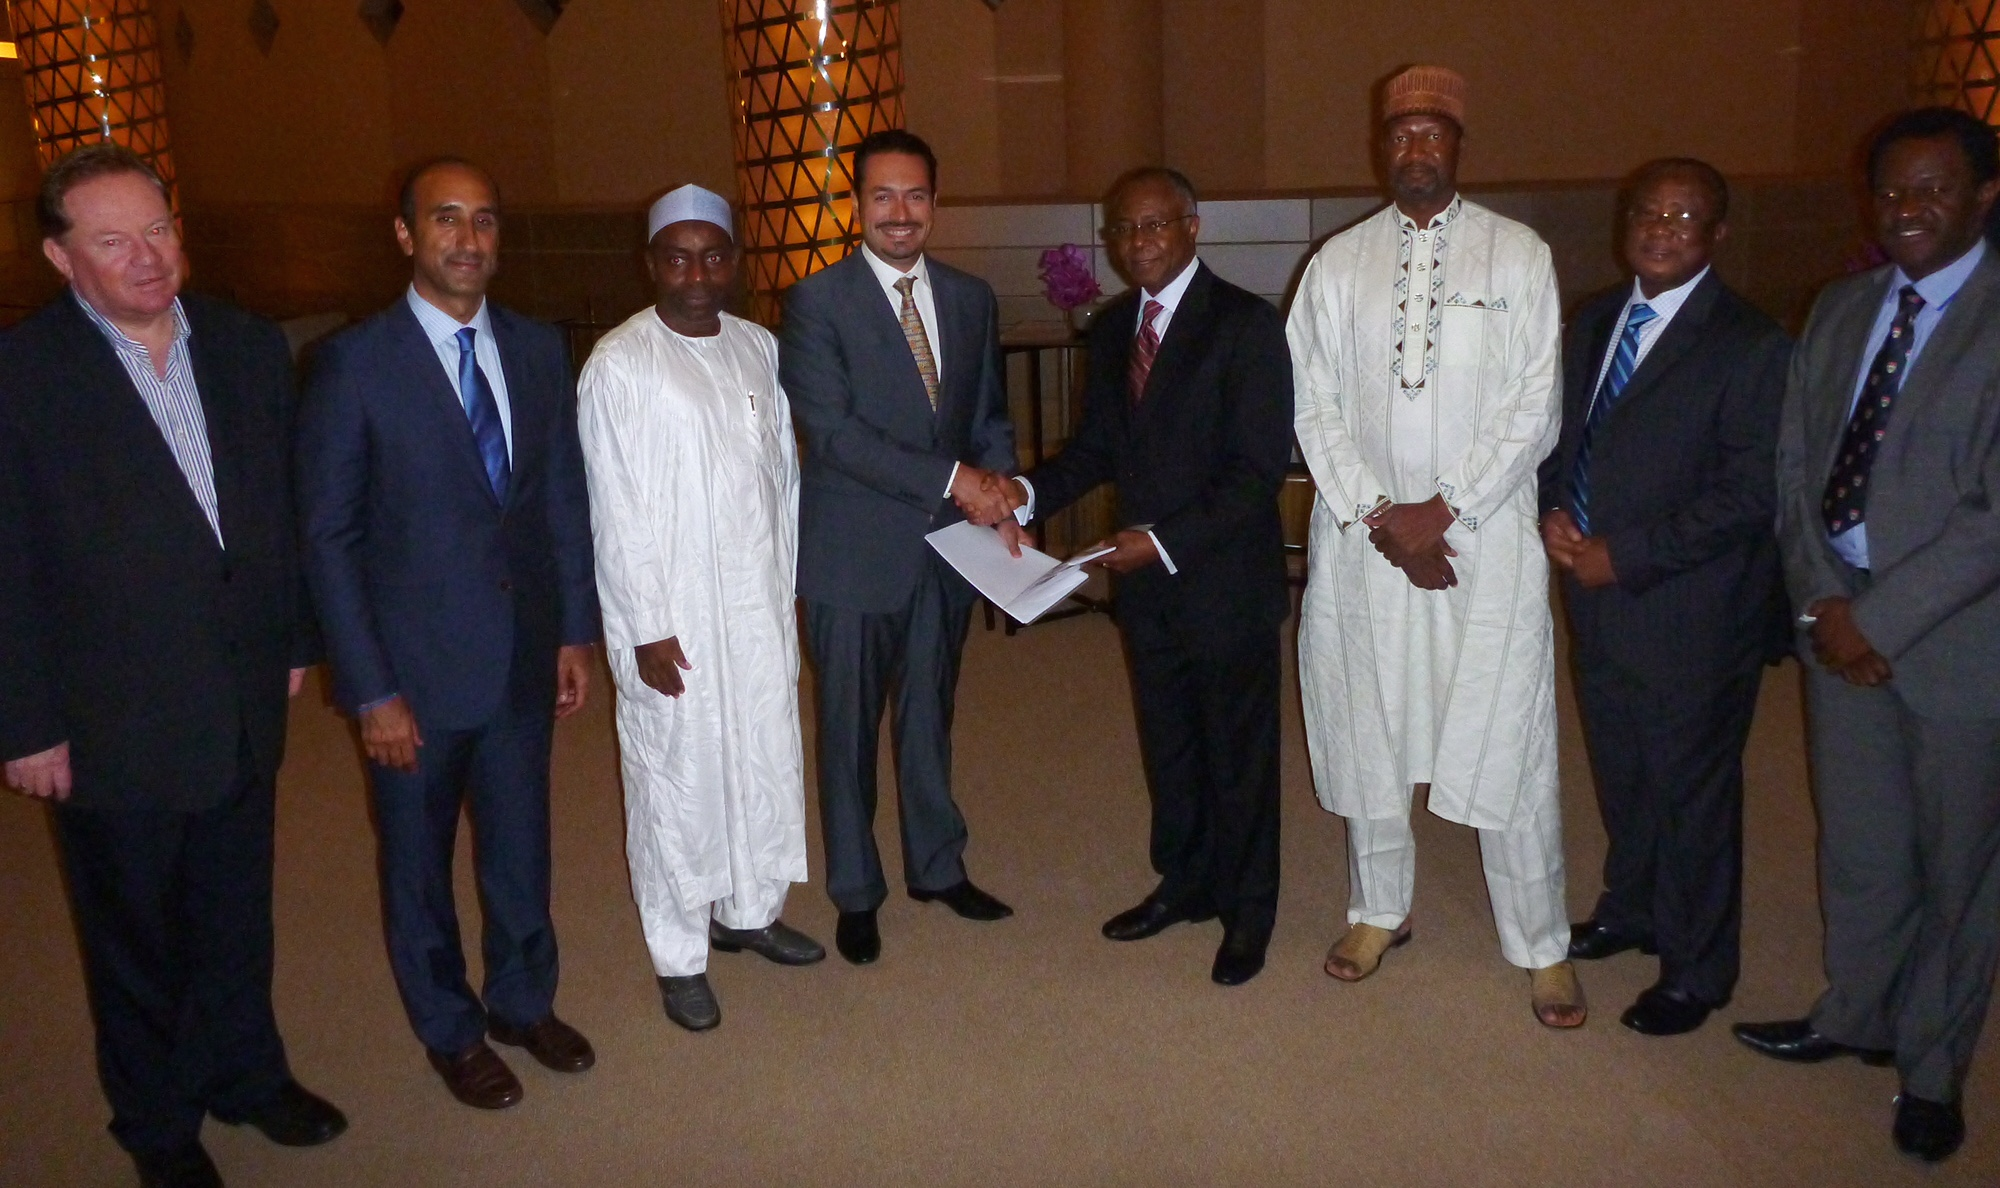 Image caption: The Medtronic and Renescor Managed signing ceremony which took place in Dubai with Majid Kaddoumi, VP and MD of Medtronic Middle east, Africa, Central Asia and Turkey and Chairman of Renescor, Dr Ladi Awosika shaking hands in the presence of His Excellency Ibrahim Auwalu, Ambassador of Nigeria in the UAE and Medtronic and Renescor representatives.